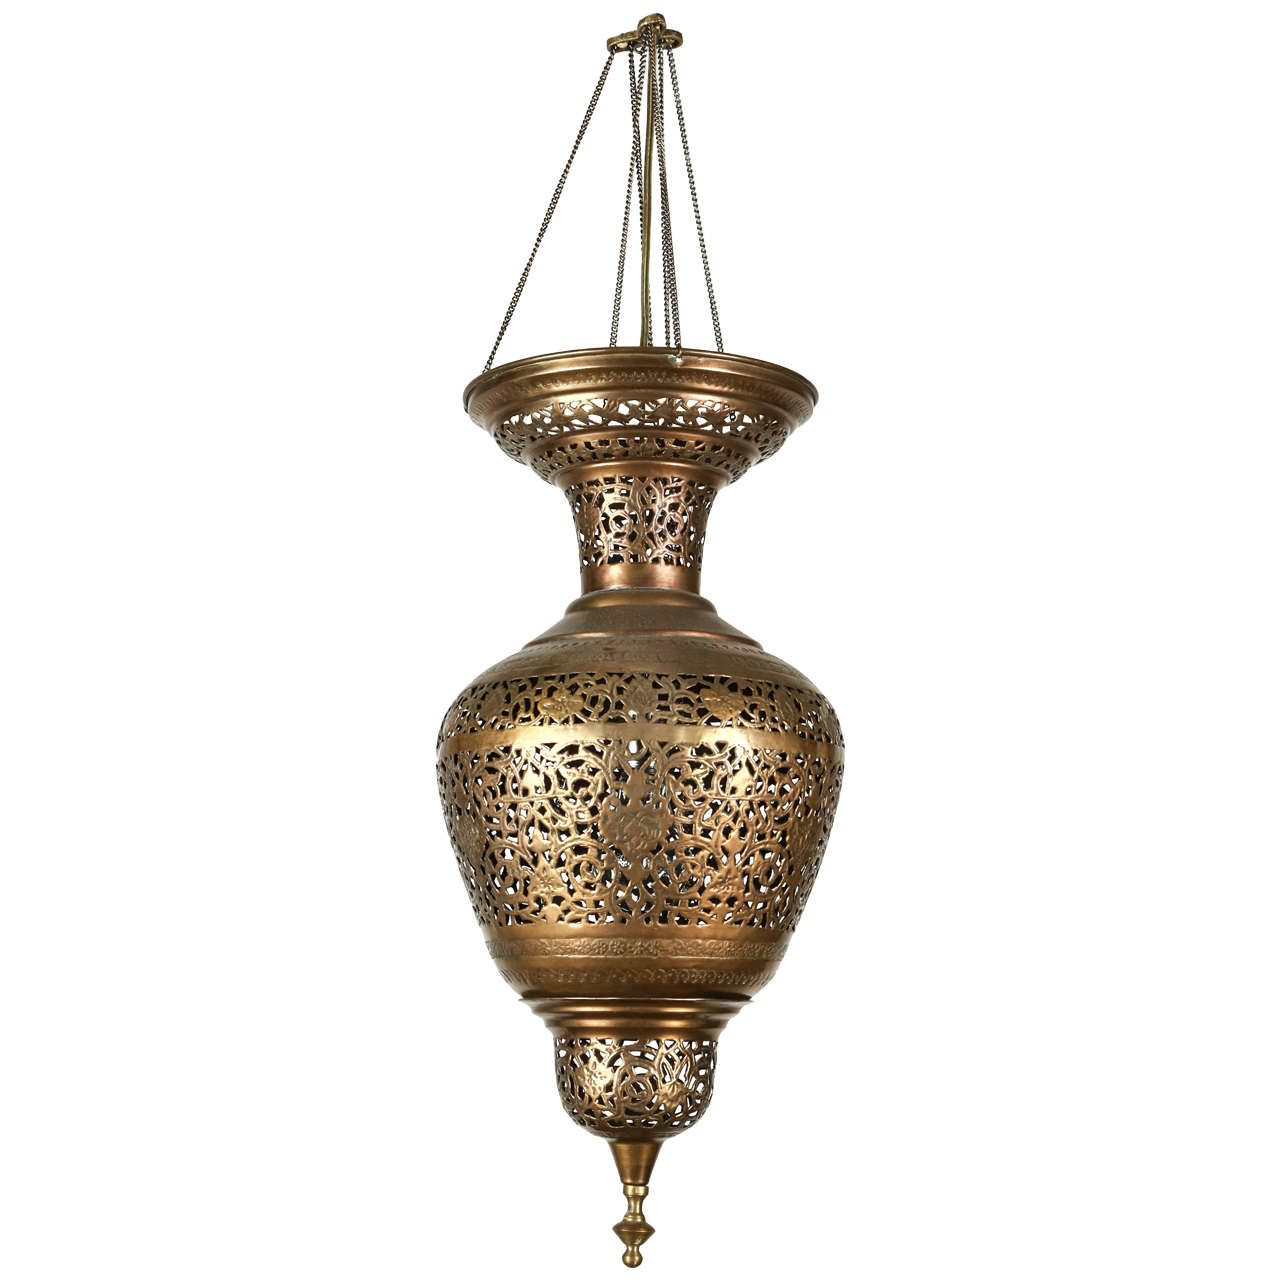 Moorish Brass Hanging Light Fixture For Sale At 1stdibs